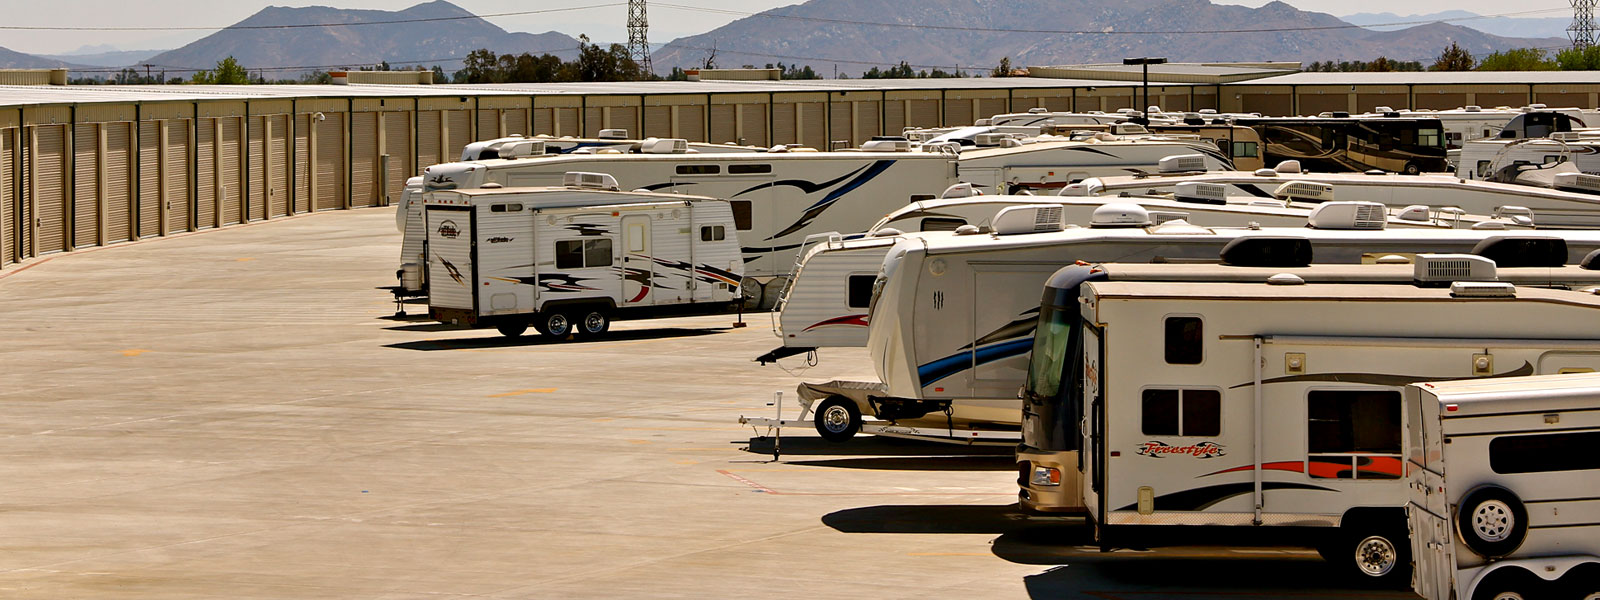 RV Storage Parking lot